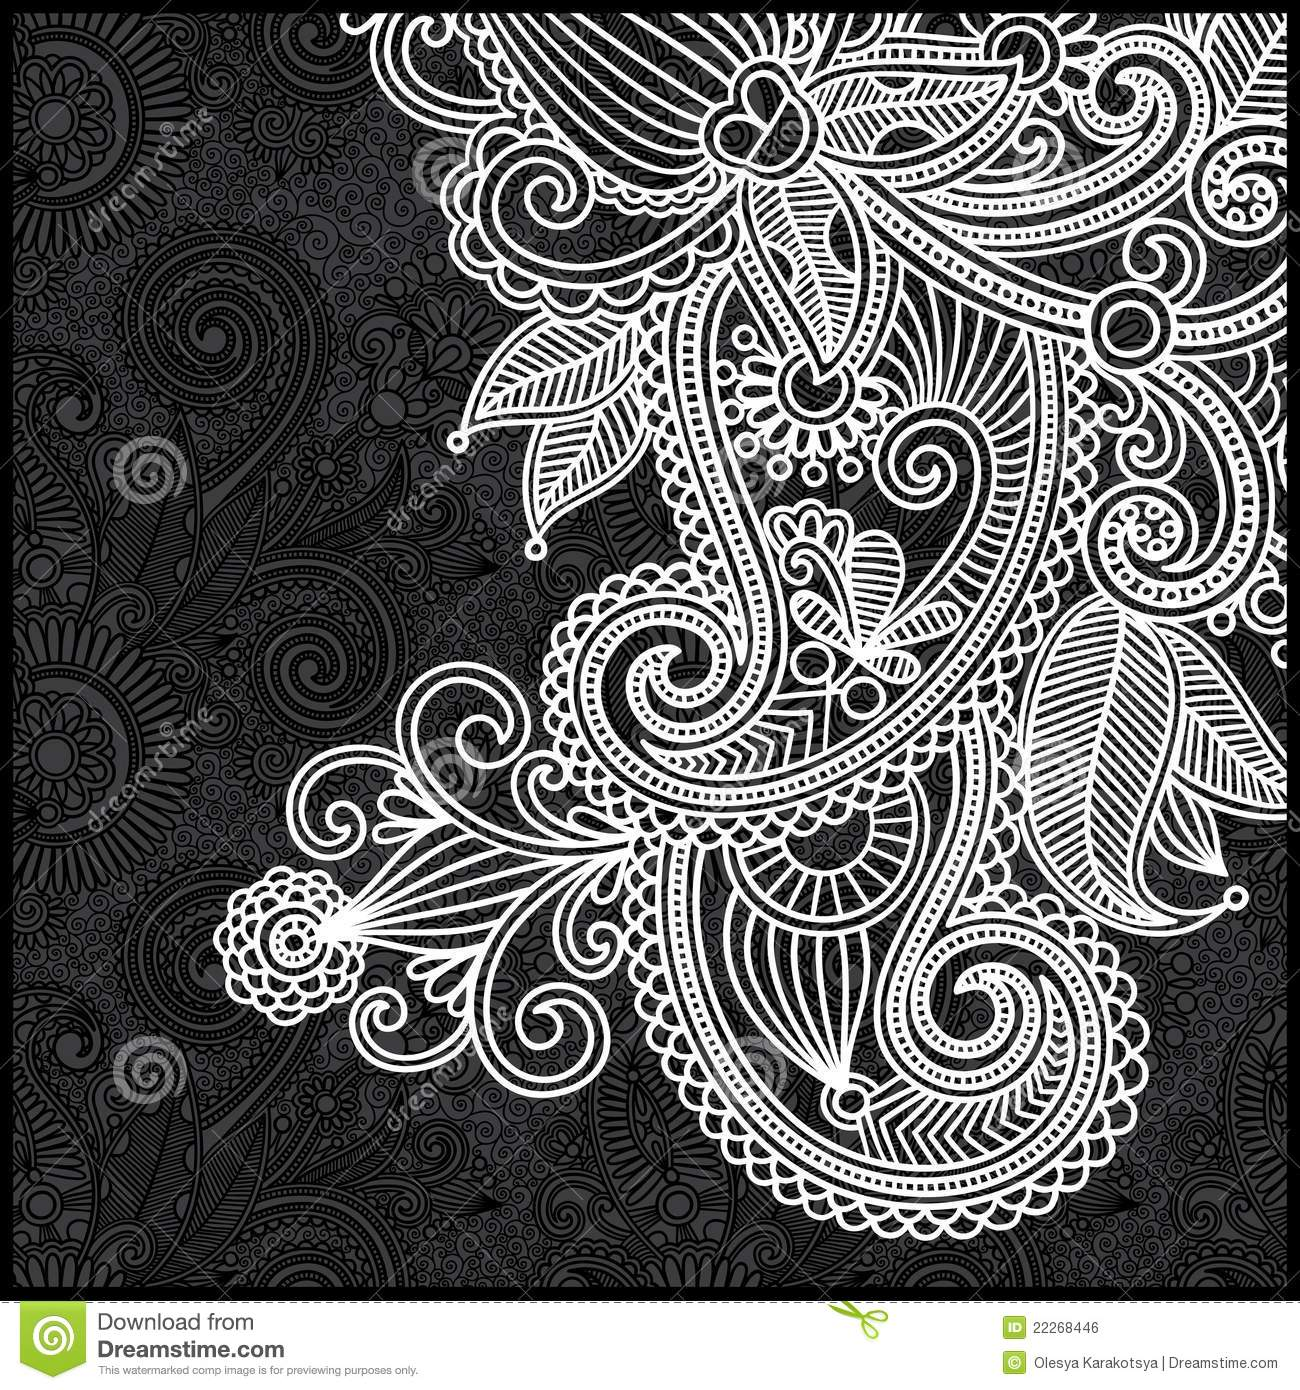 Black Flower And Bud Pattern Royalty Free Stock Photos: Black And White Floral Pattern Stock Vector